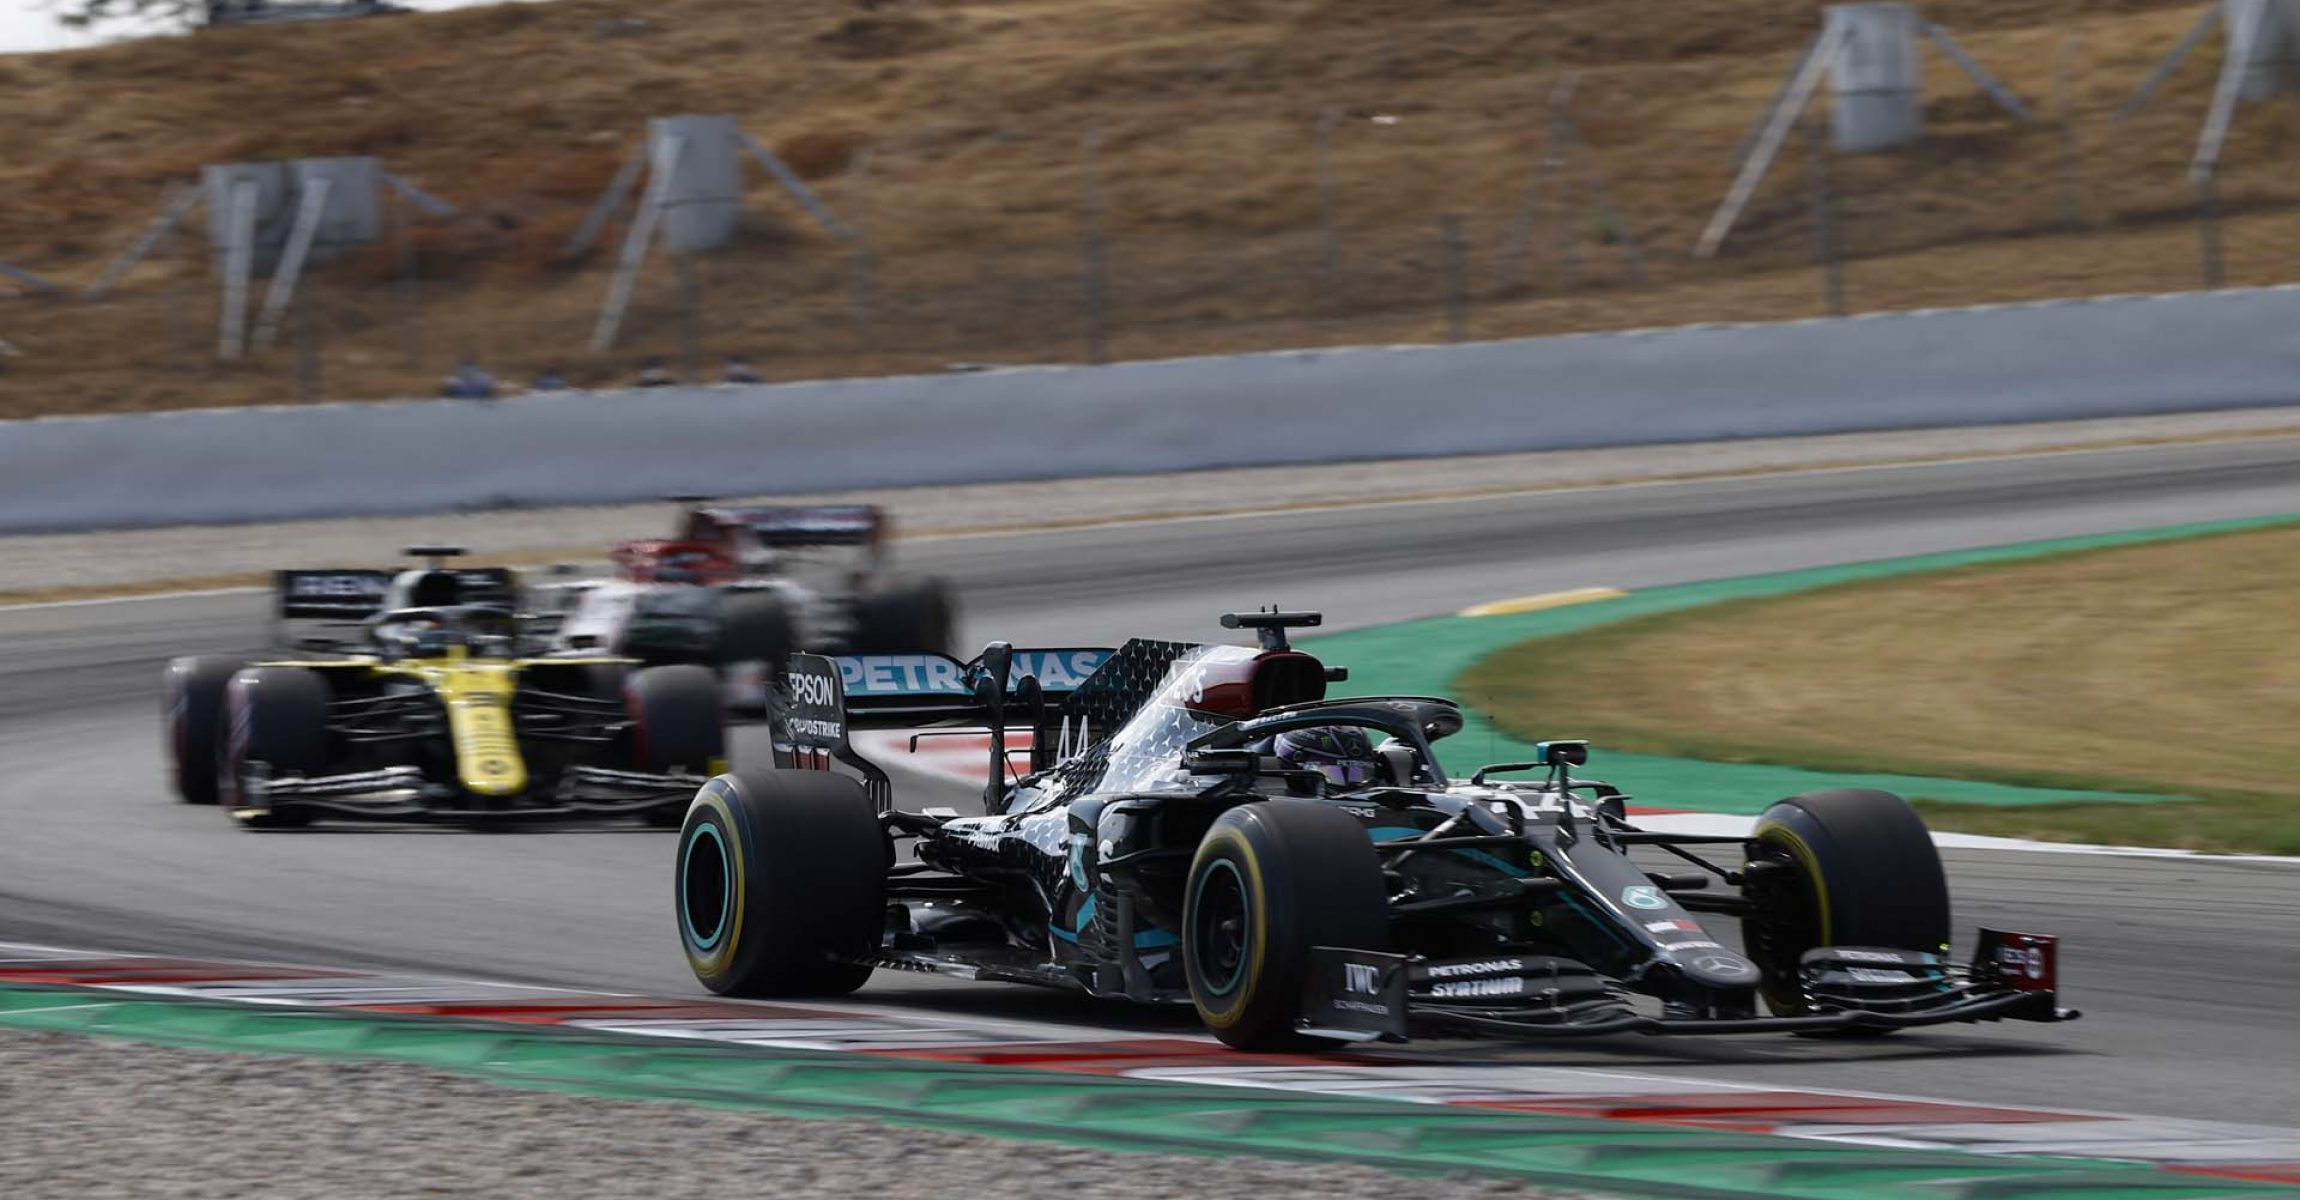 2020 Spanish Grand Prix, Sunday - LAT Images Lewis Hamilton Mercedes